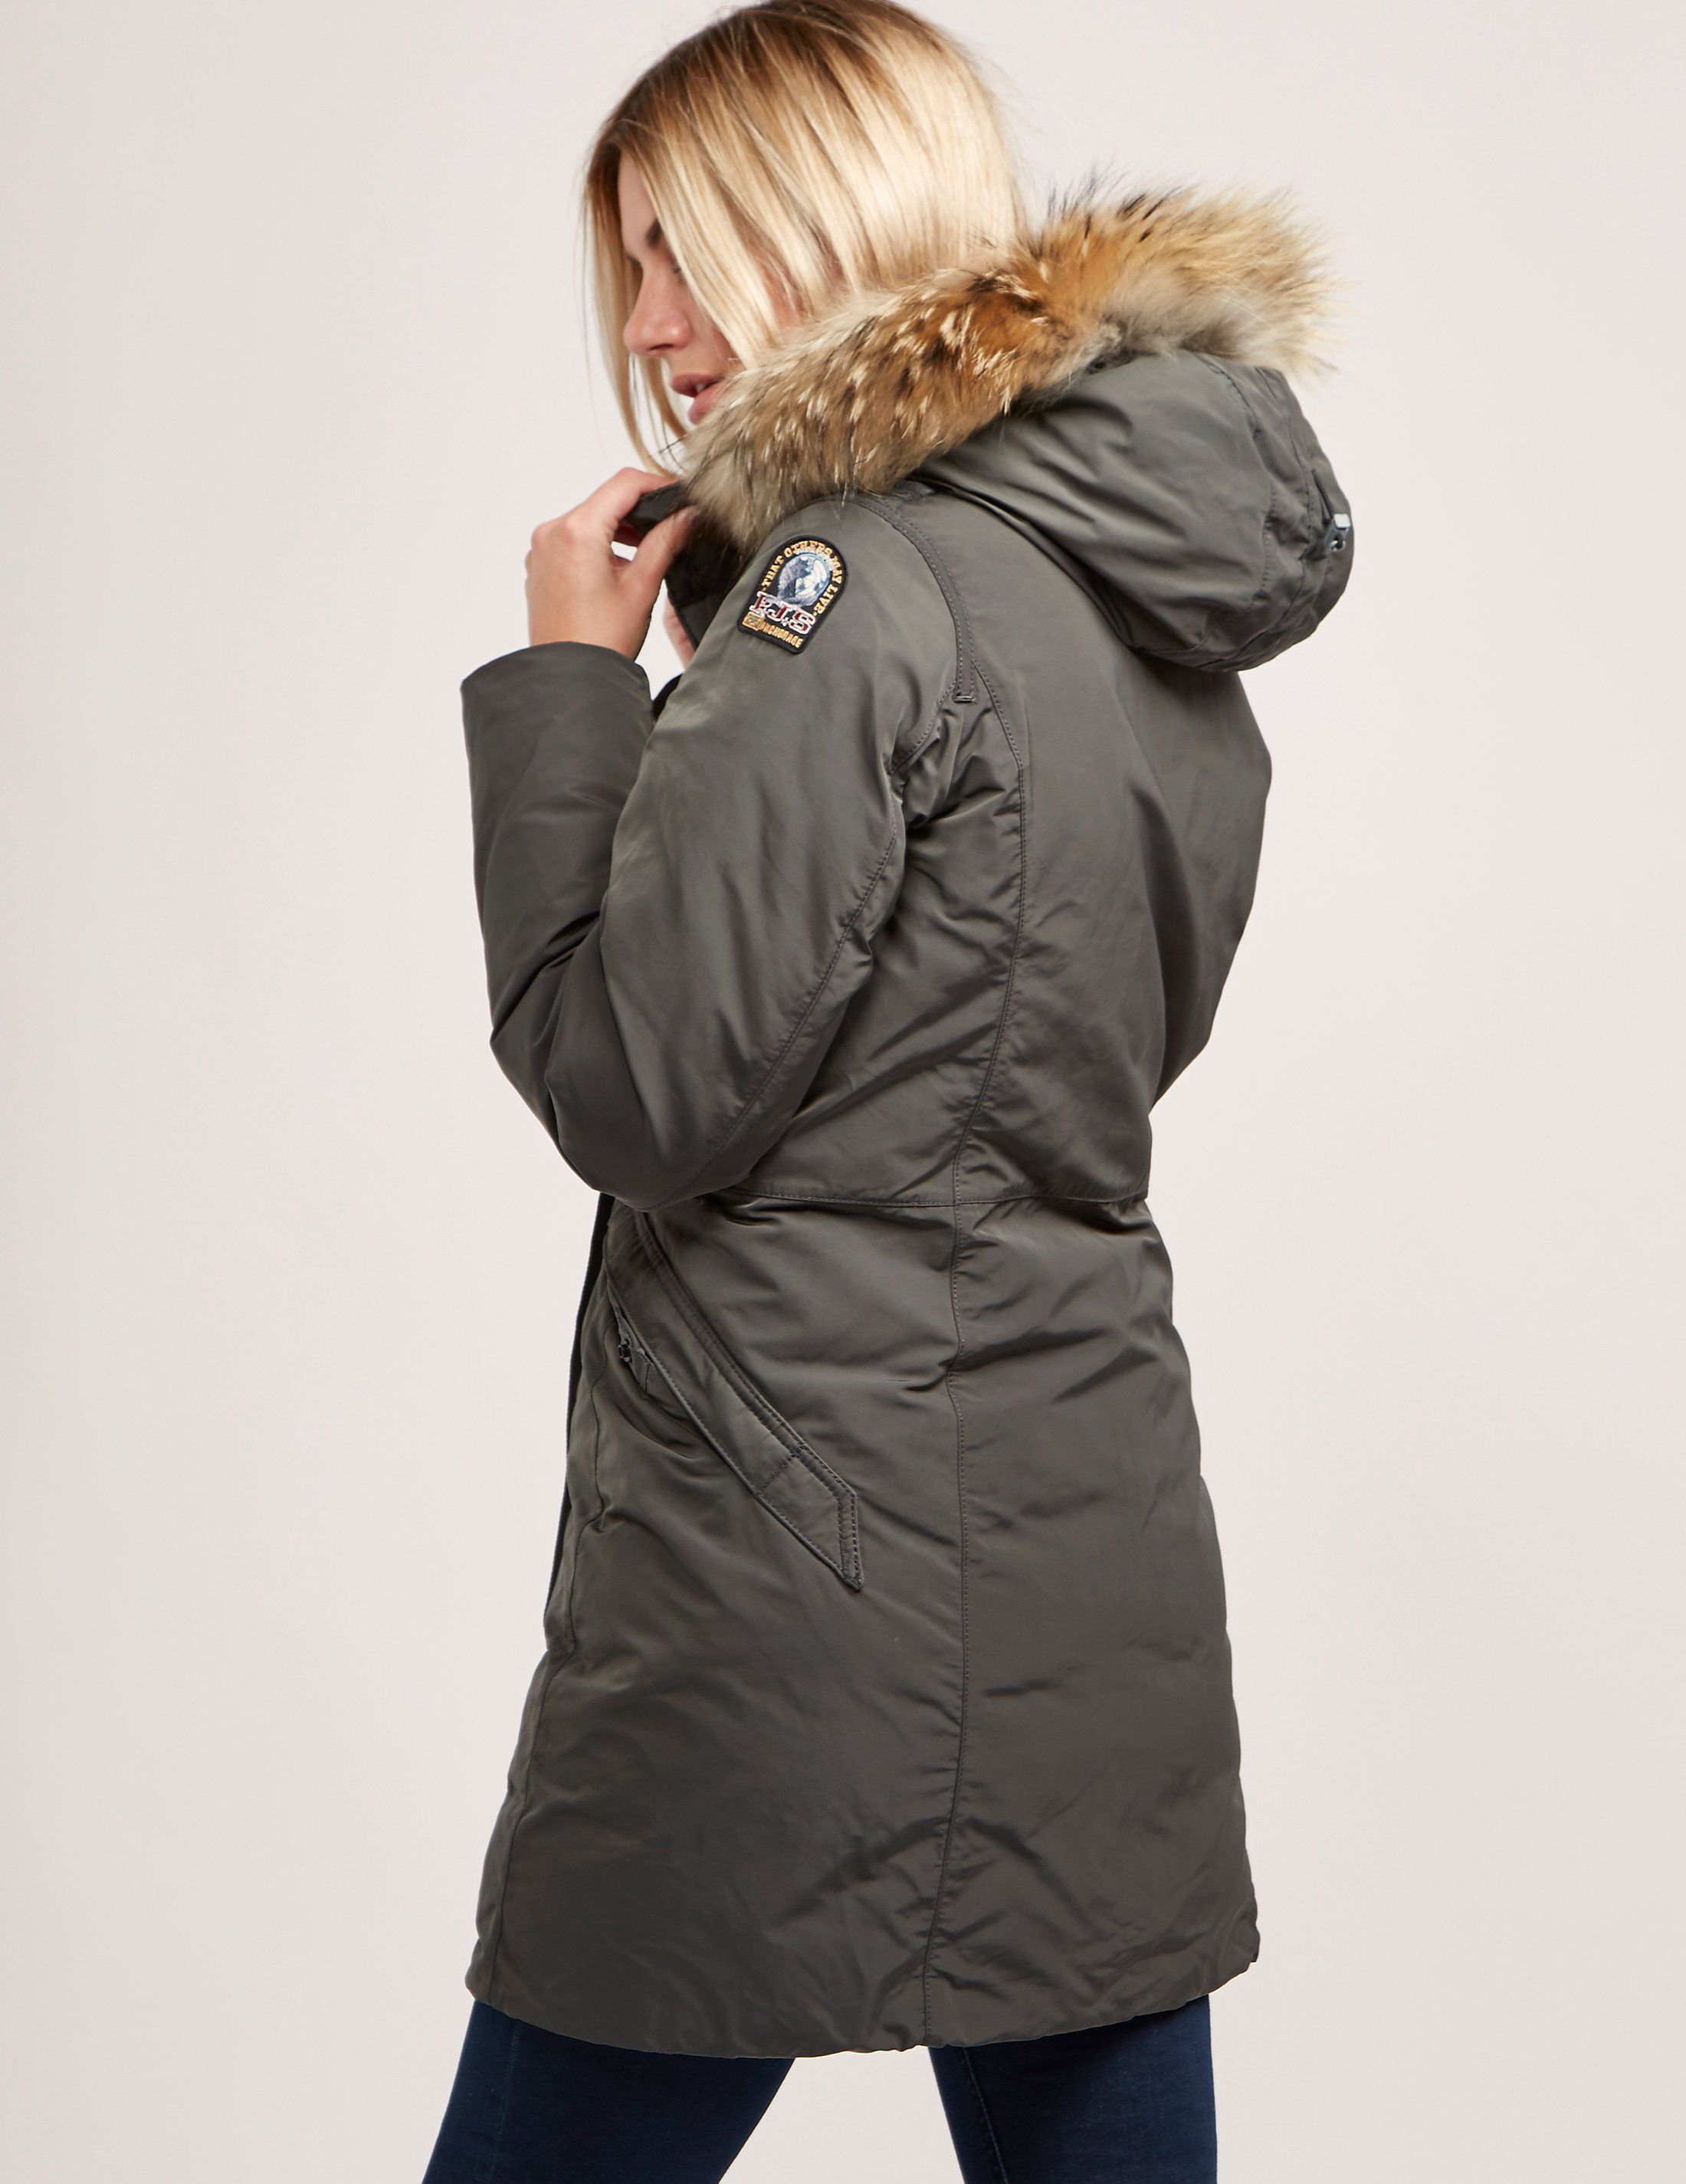 Parajumpers Angie Padded Jacket - Online Exclusive